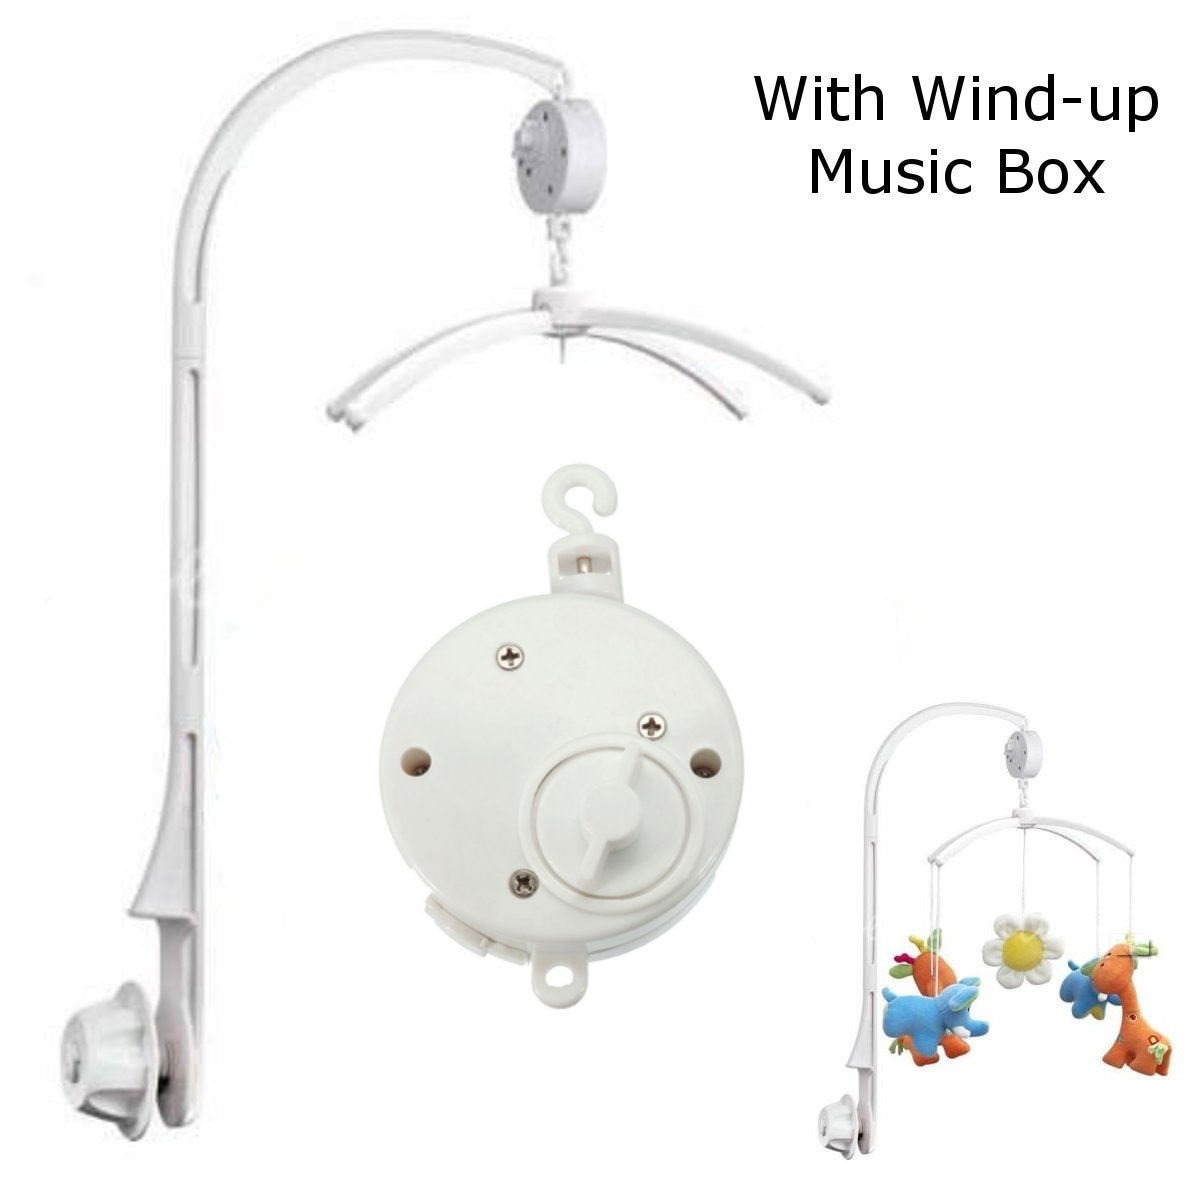 Baby Crib Bell Musical Mobile Plays Tunes Wind-up Music Box+ Baby Crib Mobile Bed Bell Holder Arm Bracket... by